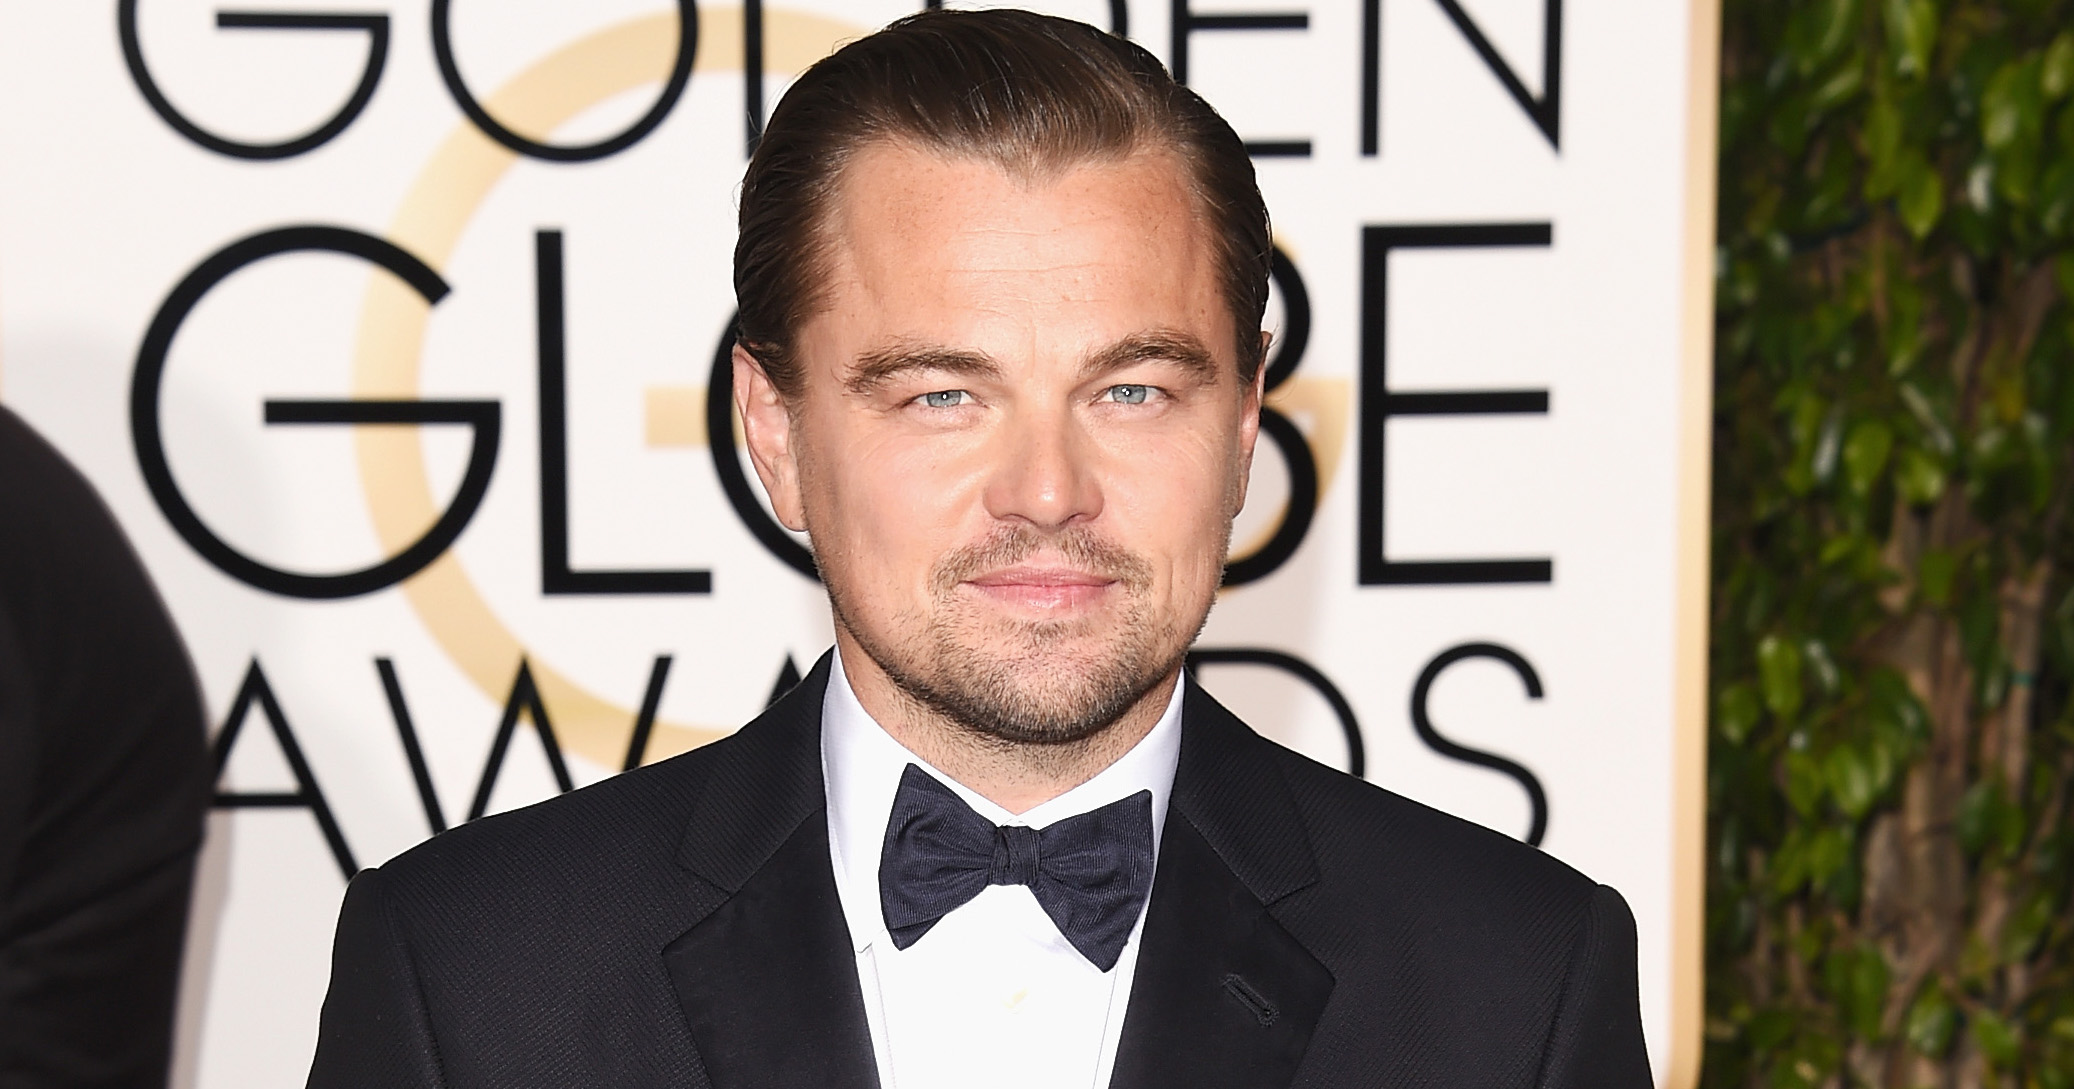 Leonardo DiCaprio attends the 73rd Annual Golden Globe Awards on Jan. 10, 2016 in Beverly Hills, Calif.